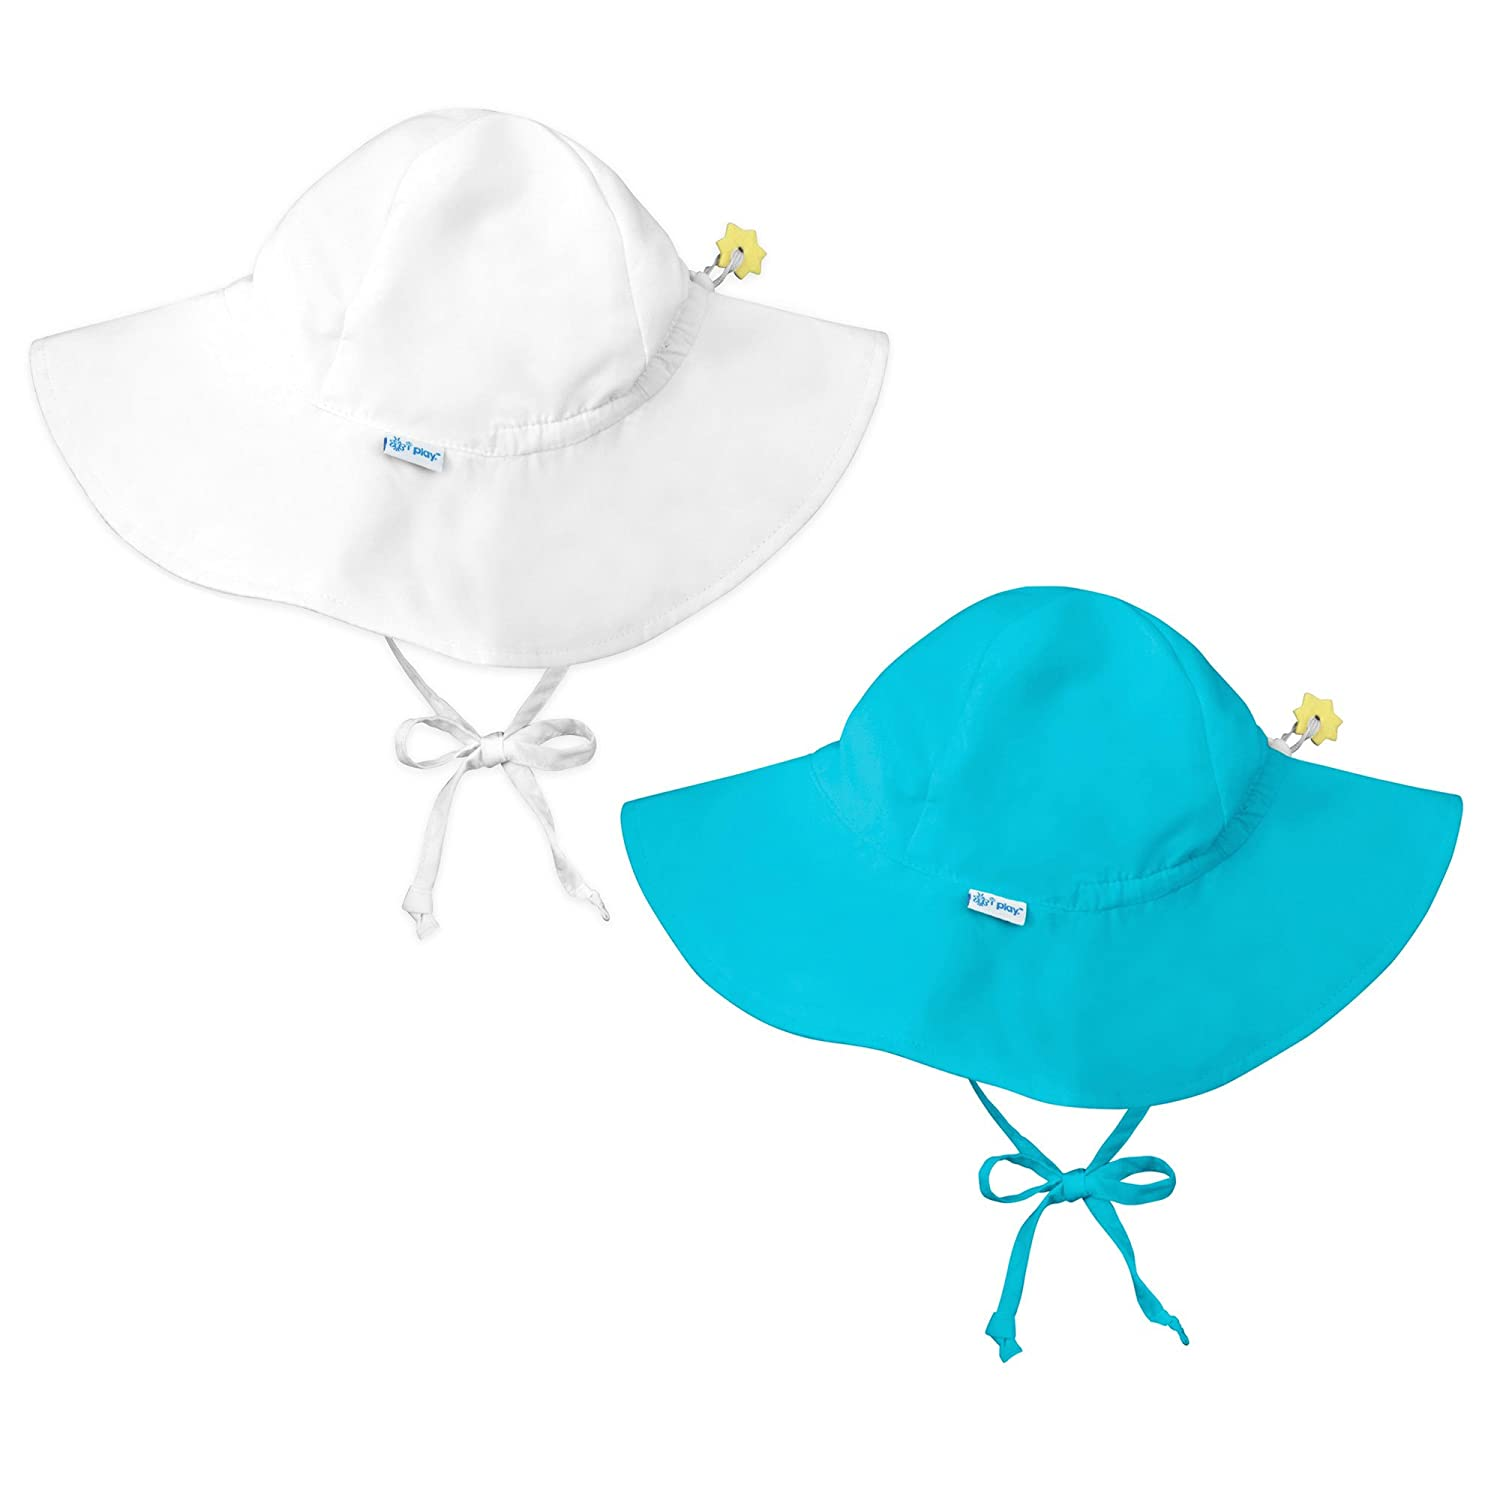 Sun Protection Swim Hats Beach Hats Baby /& Toddler Brim Sun Hats UPF 50 i play..